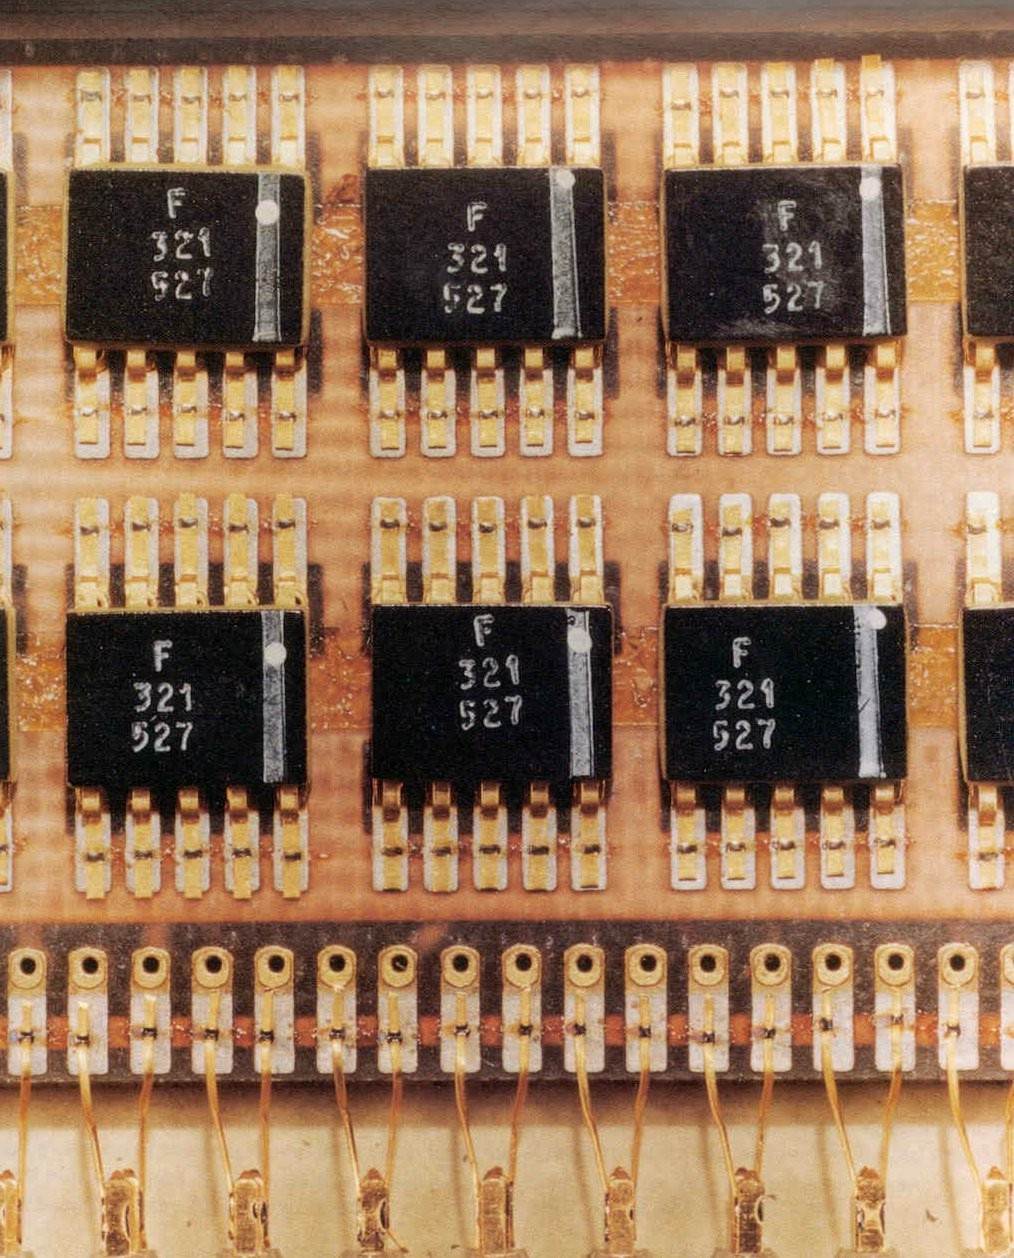 Flat pack surface-mounted integrated circuits from the Apollo spacecraft.